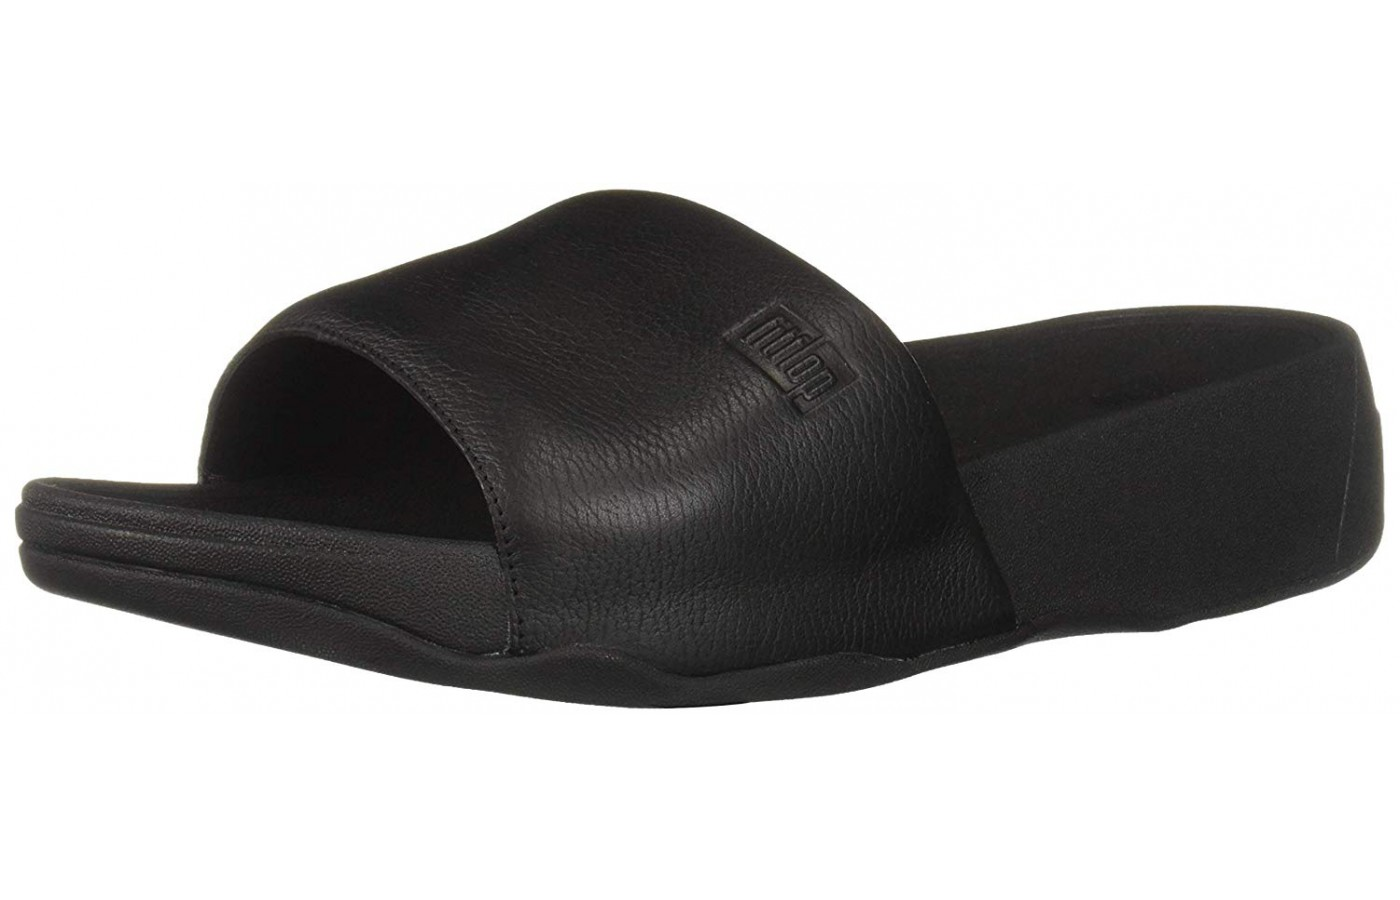 The easy-to-wear Kano slide by FitFlop.